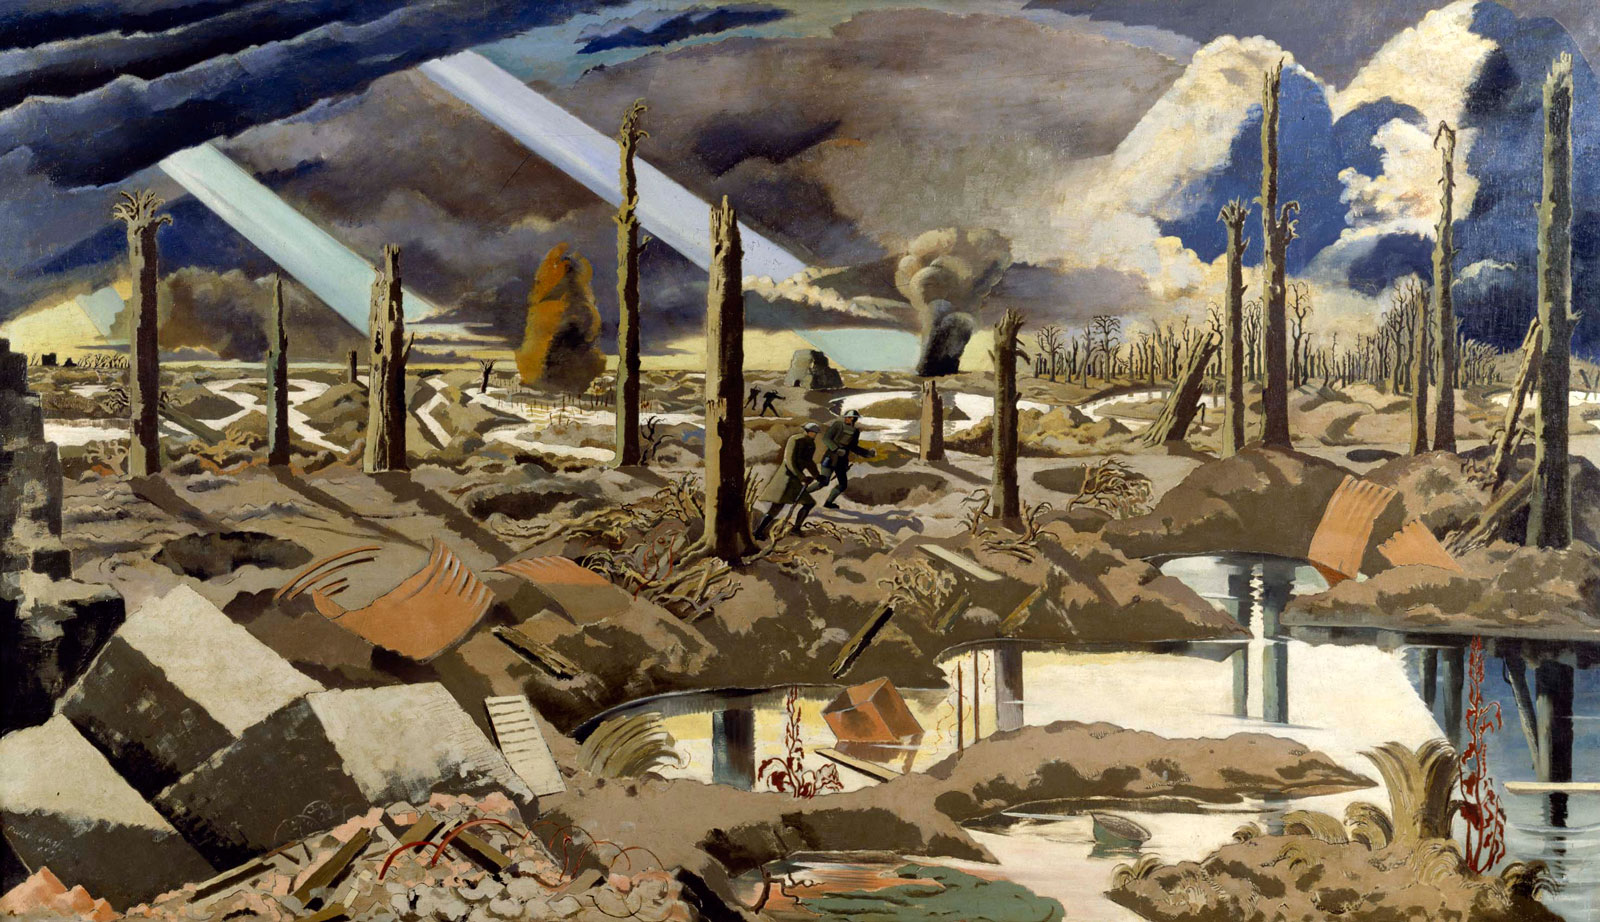 Paul Nash: The Menin Road, 1919